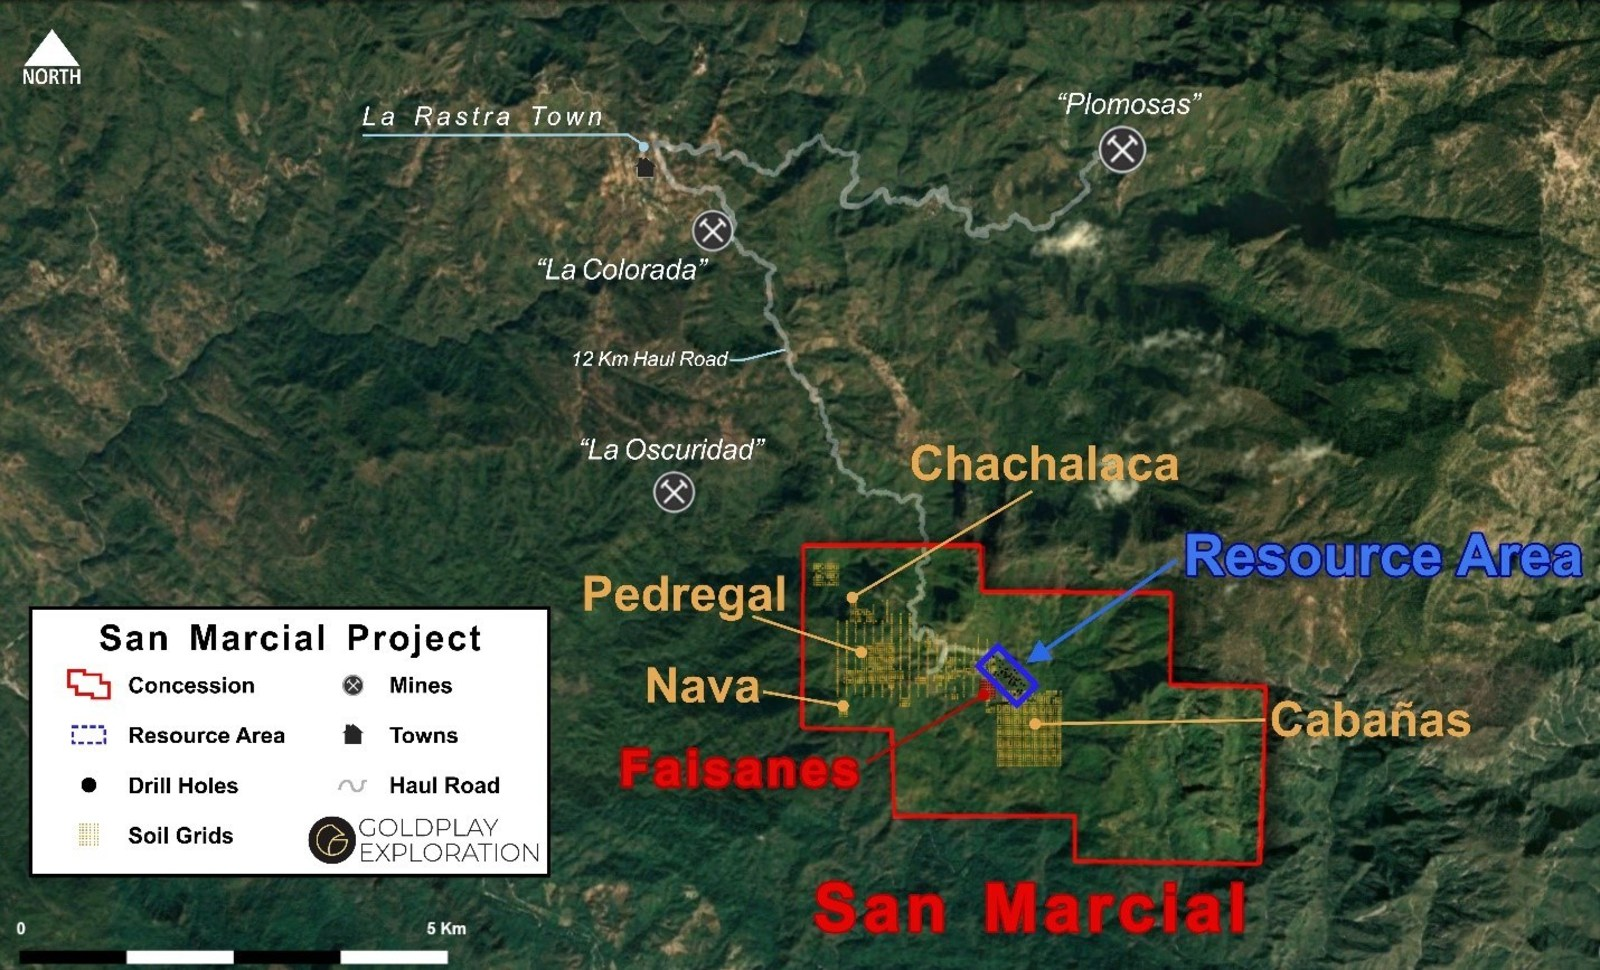 Figure 1 San Marcial - Location of Resource Area and New Targets Inside Concession